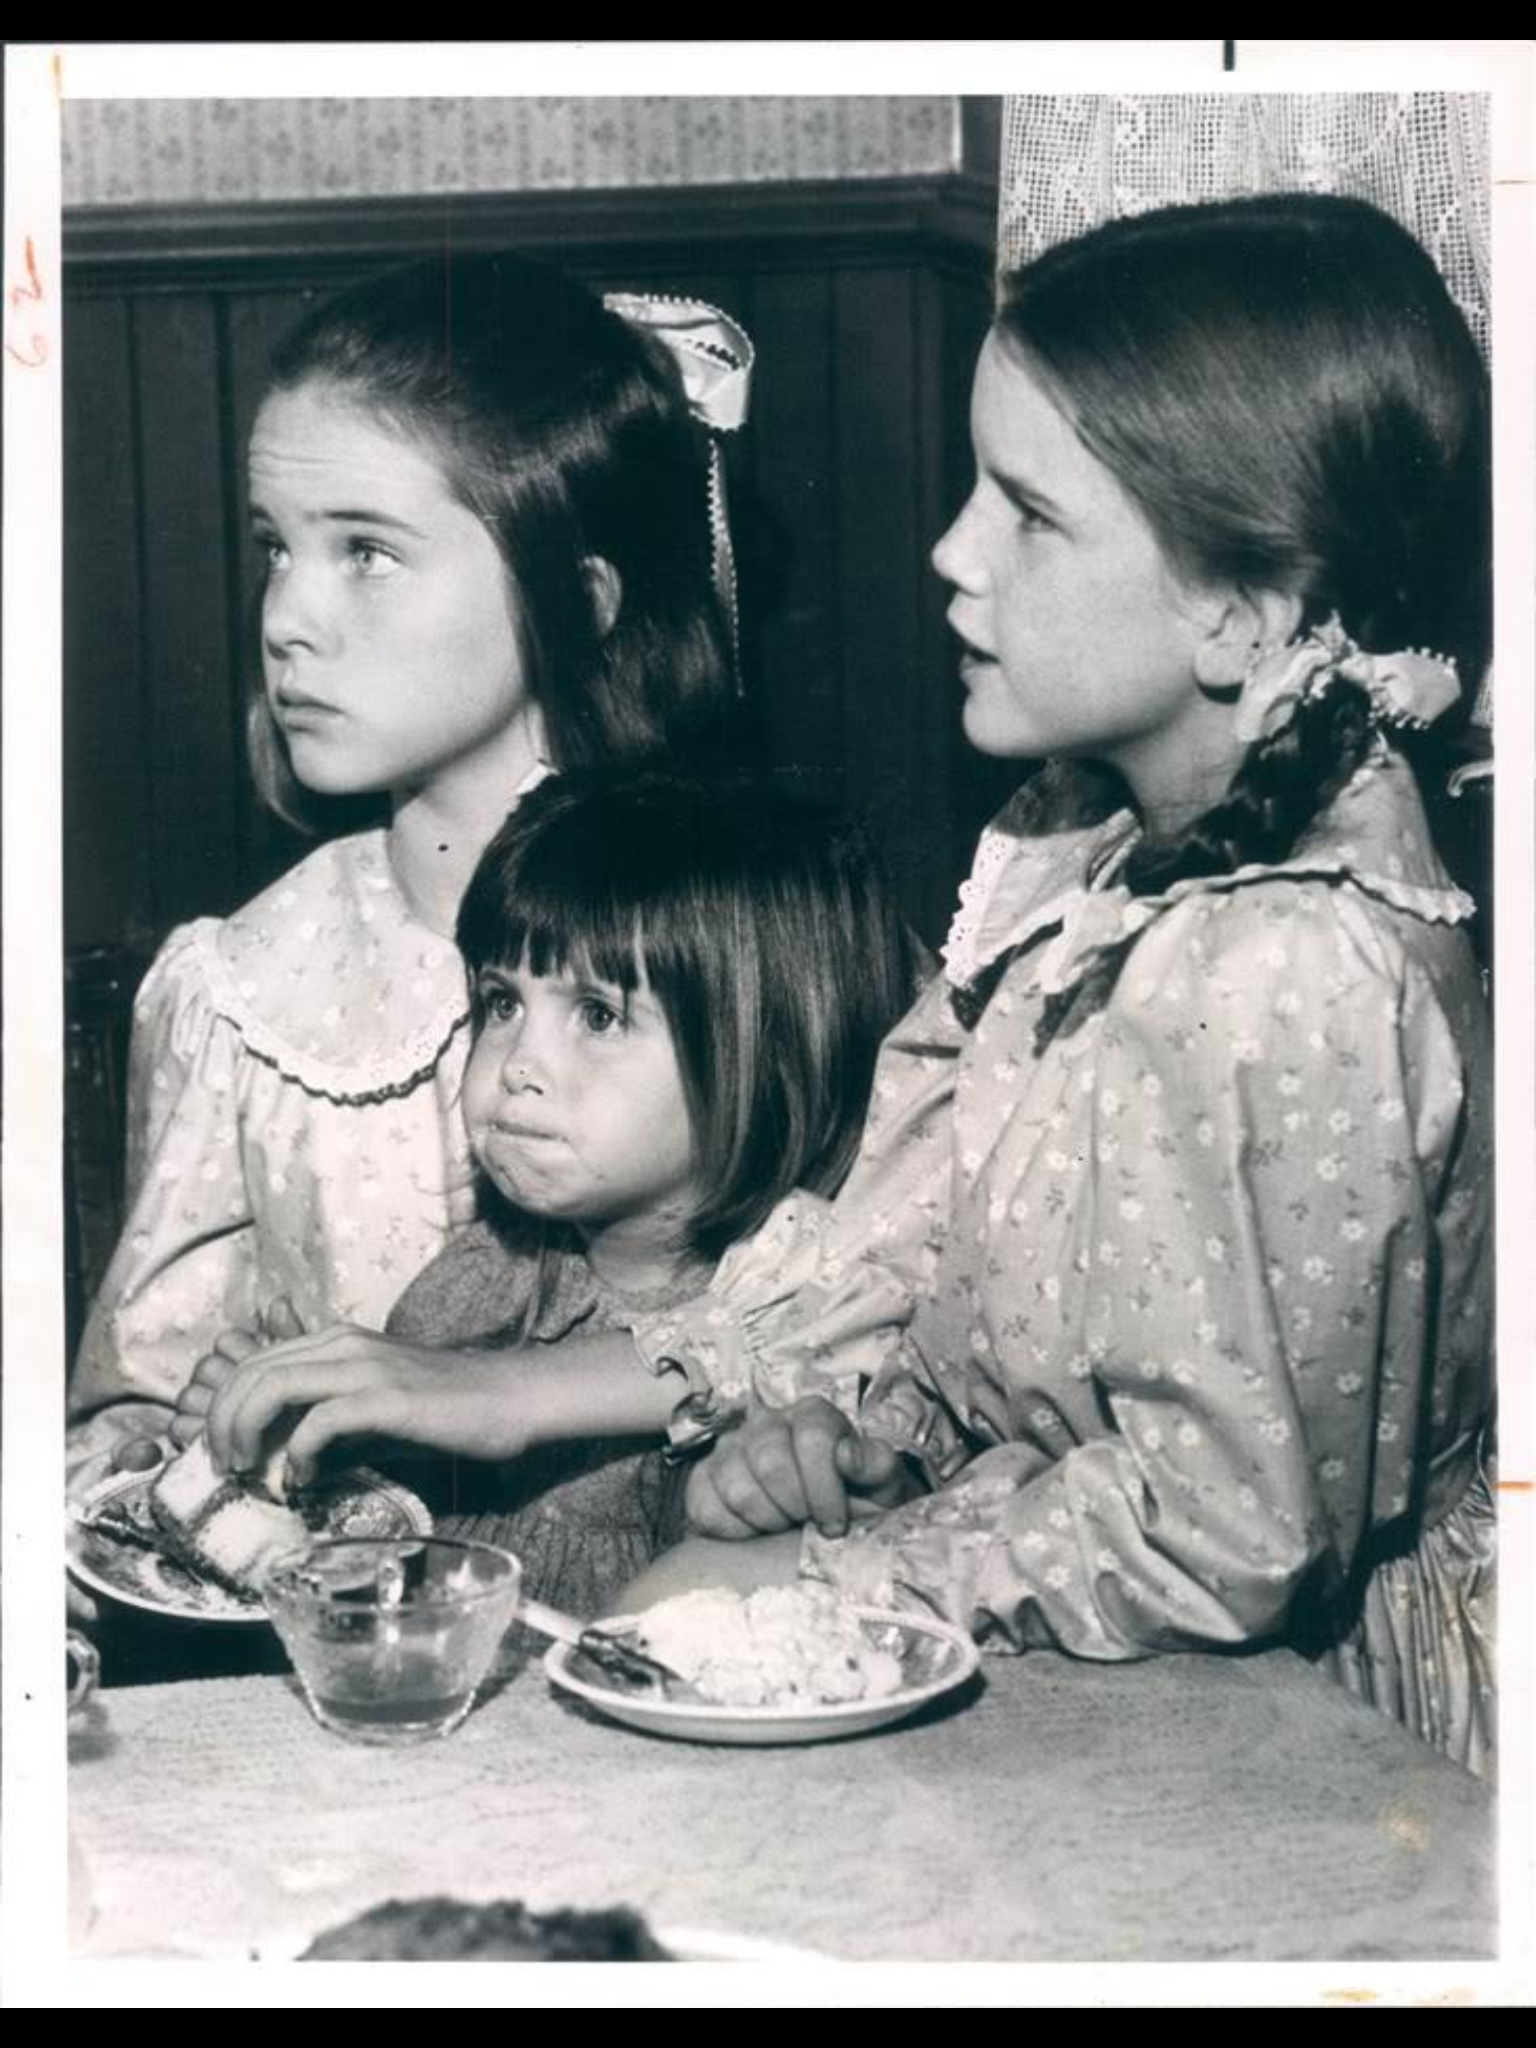 carrie ingalls | little house on the prairie wiki | fandom powered